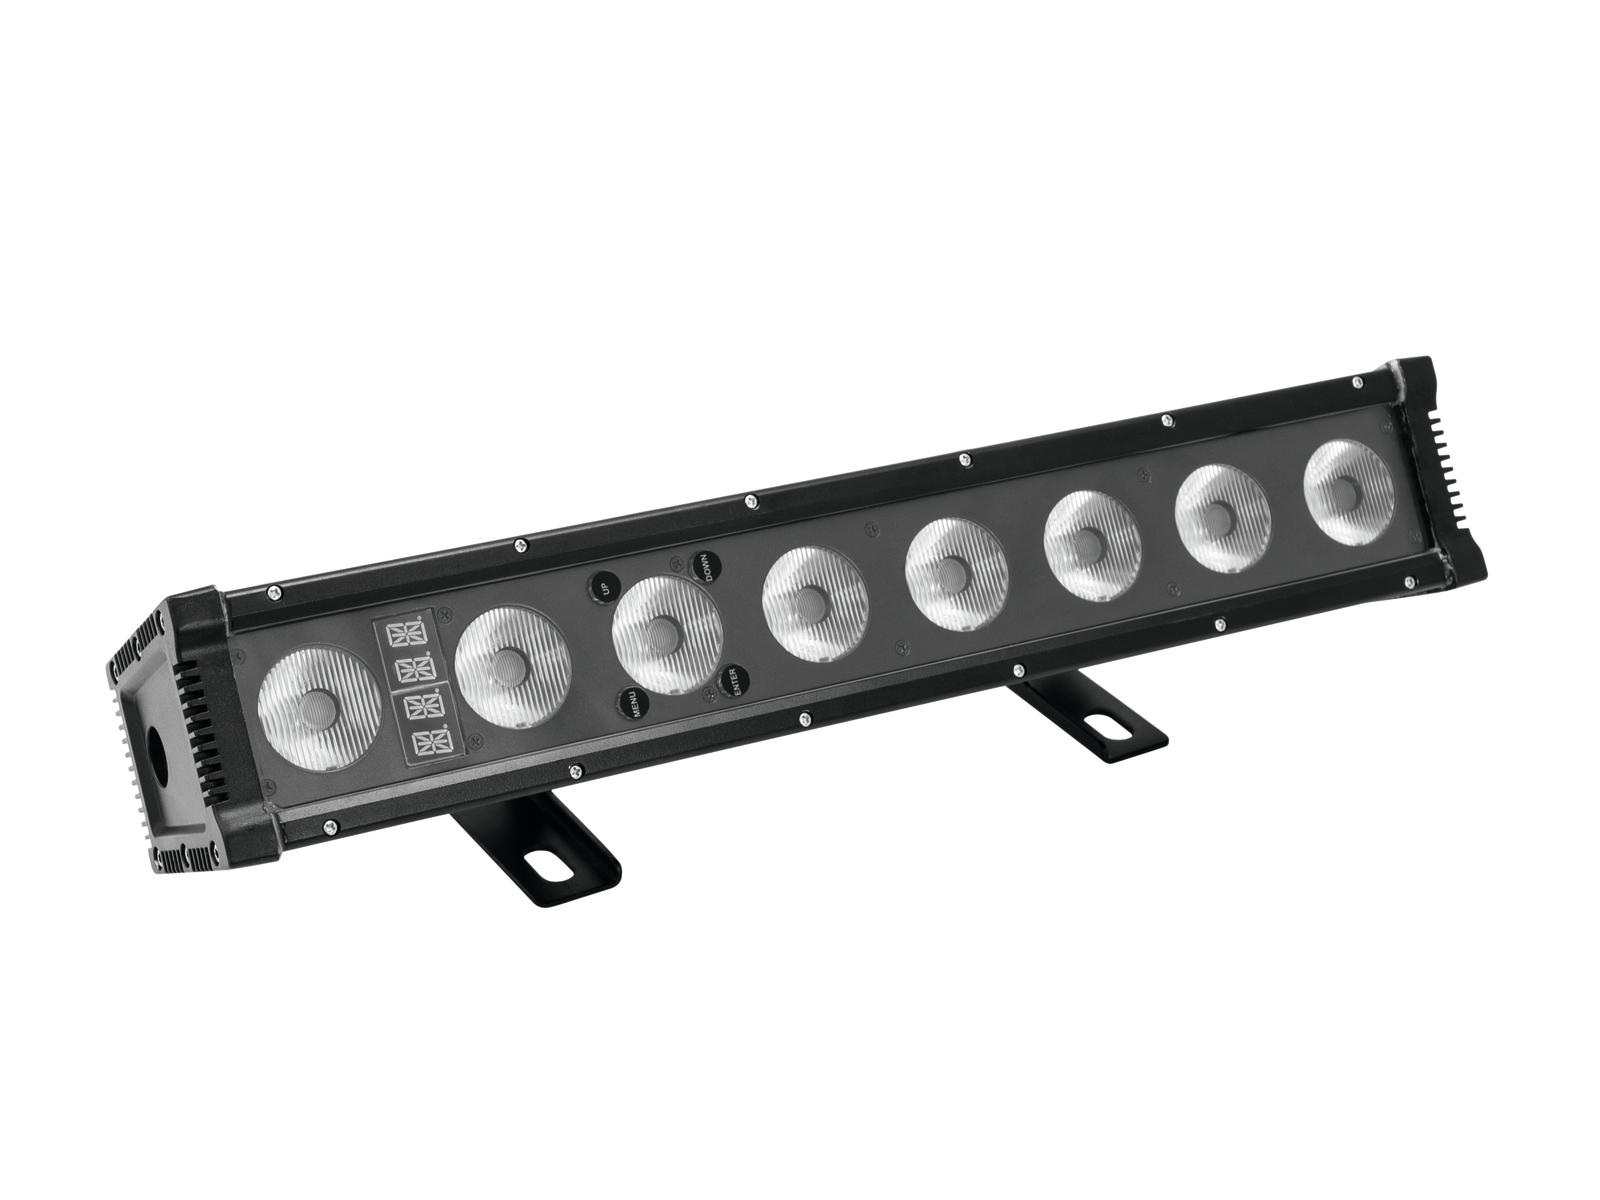 EUROLITE LED IP T1000 QLC bar